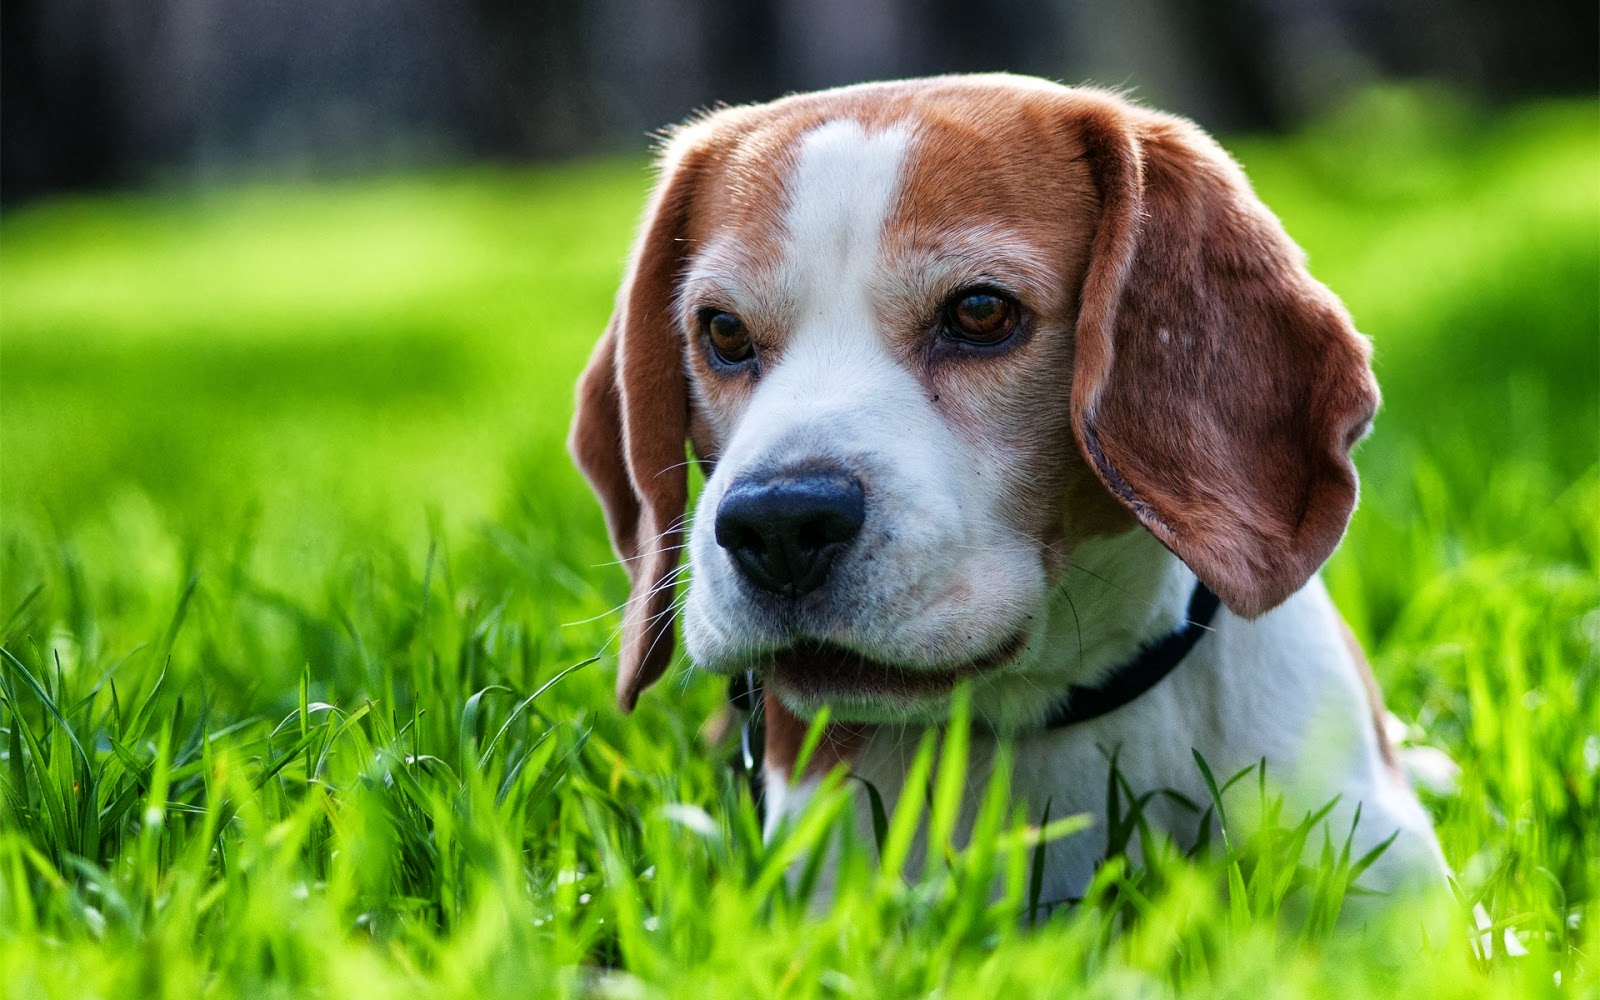 Cute Dog Wallpaper Backgrounds Beagle Puppy Cute Mystery Wallpaper